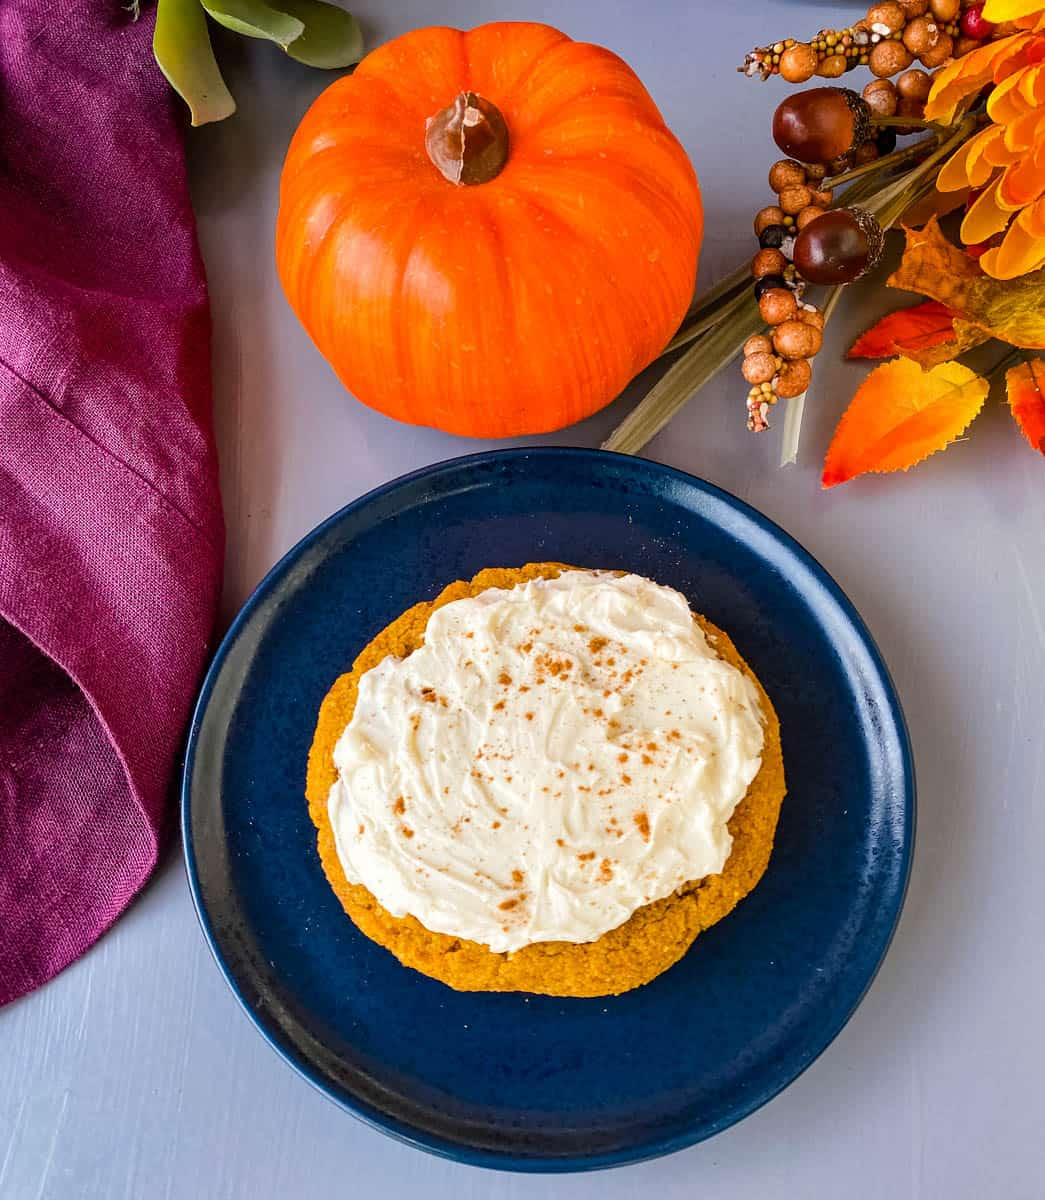 keto pumpkin cookies with cream cheese frosting and cinnamon on a blue plate